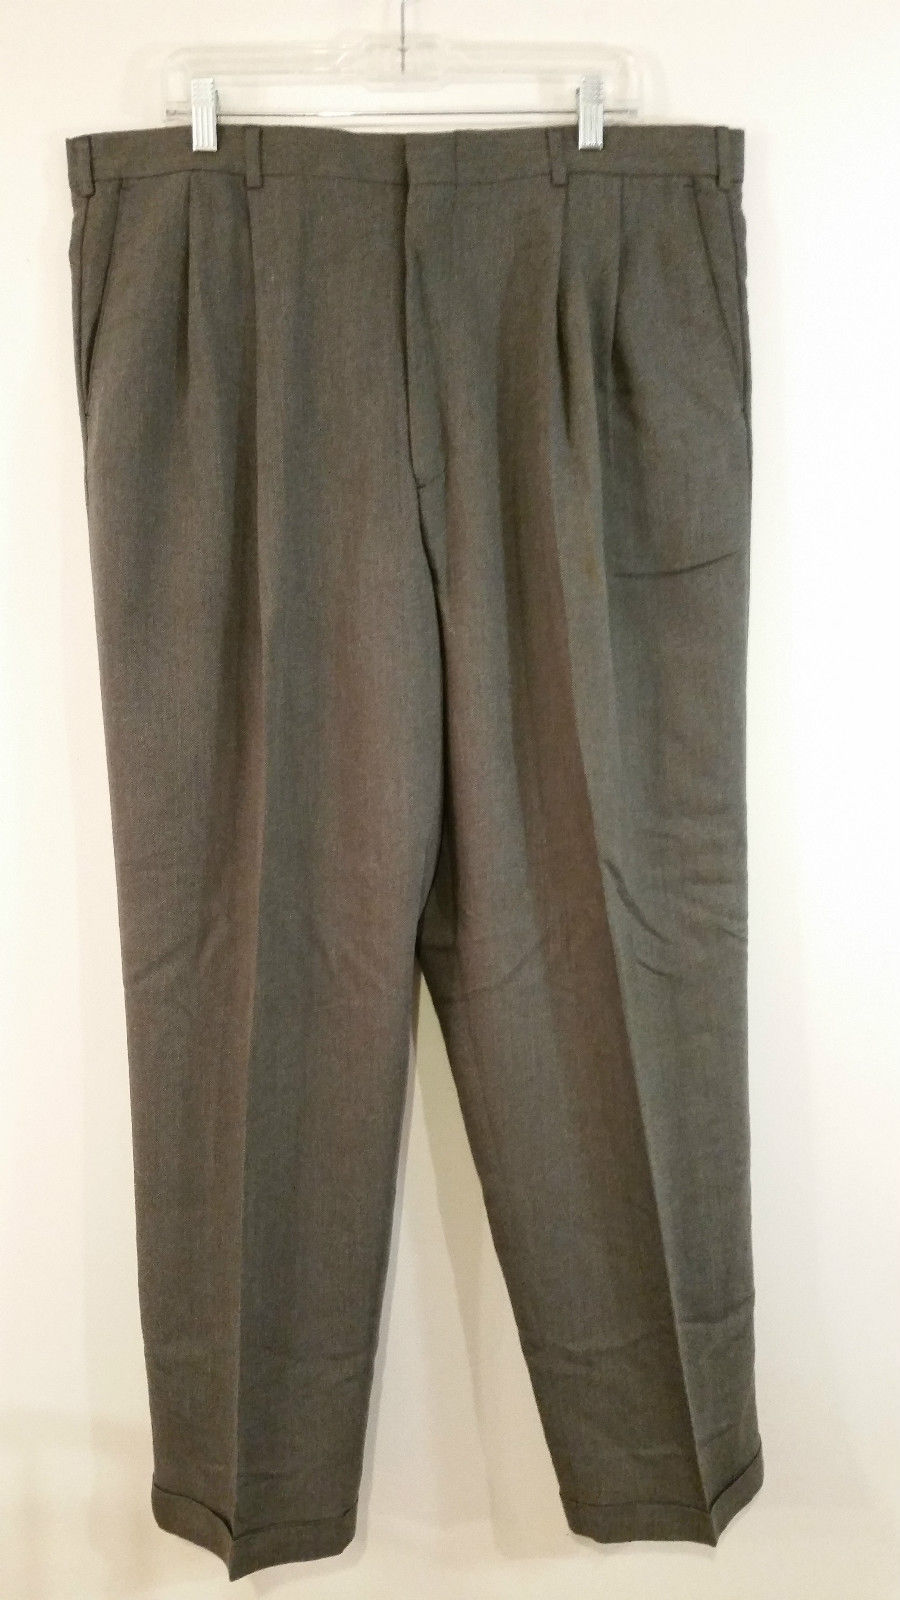 Perry Ellis Portfolio Dark Gray Pleated Front Dress Pants Size 40W by 32L